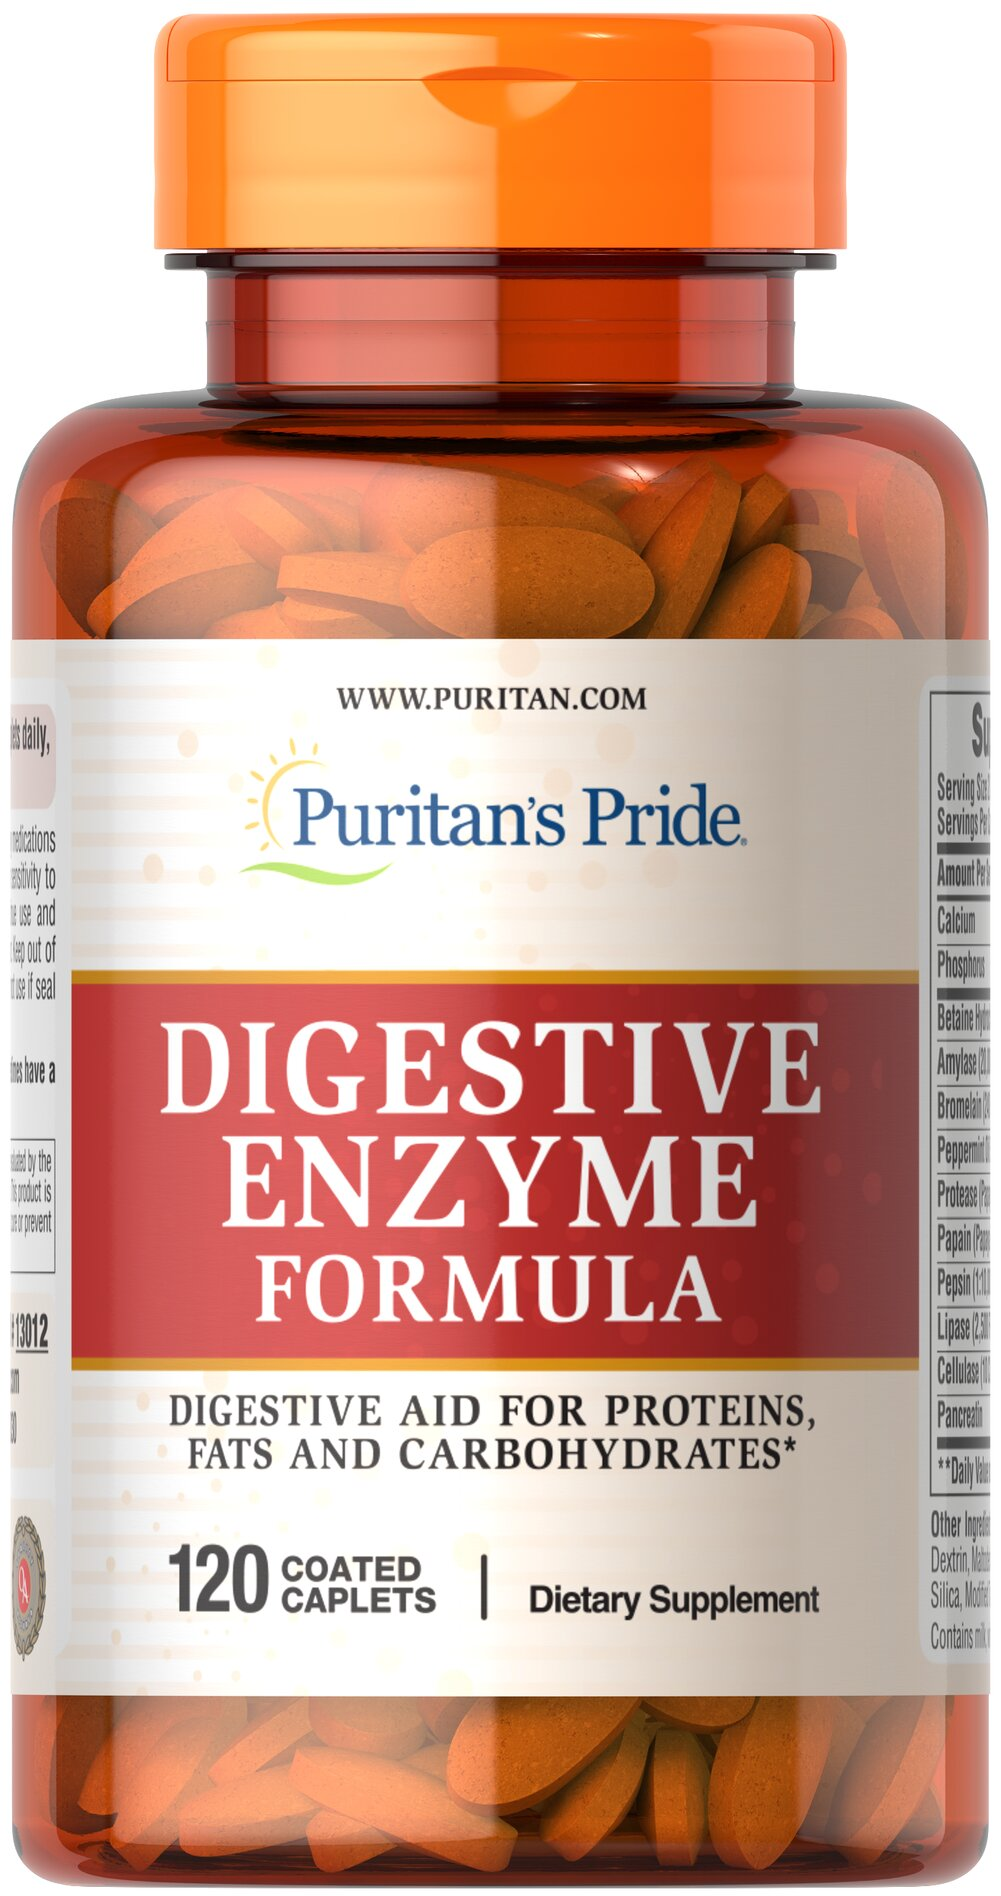 Super Strength Multi Enzyme <p>Enzymes break down the nutritional components of proteins, fats and carbohydrates, making these nutrients available for the body's energy needs, cell growth and other vital functions.** This holistically balanced blend is an enzyme formula that can be used to support proper digestion.**</p><p>Adults can take two (2) caplets, preferably with a meal.</p> 120 Caplets  $28.79